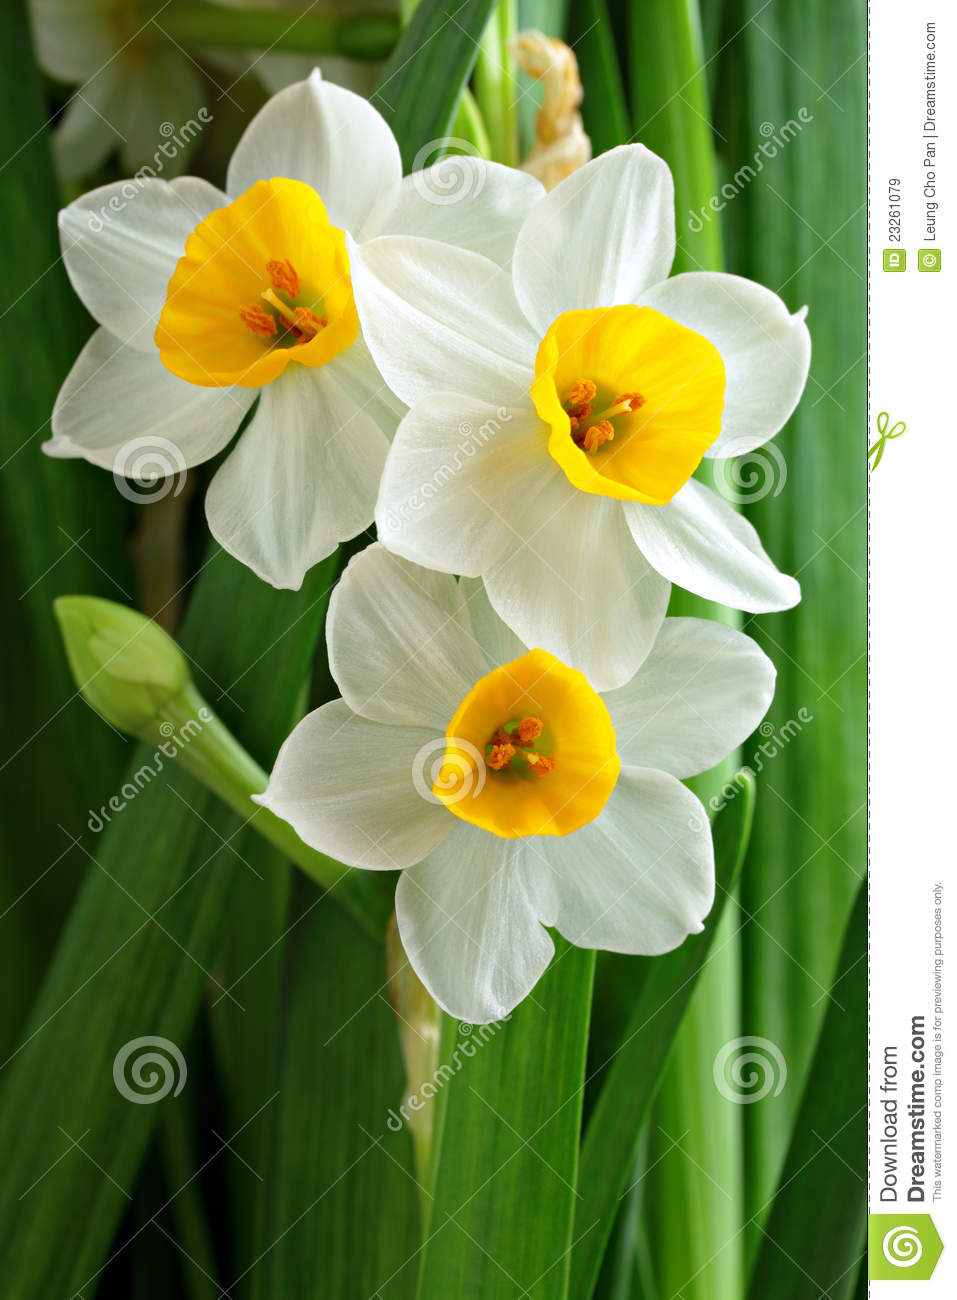 narcissus flowers  flower, Natural flower